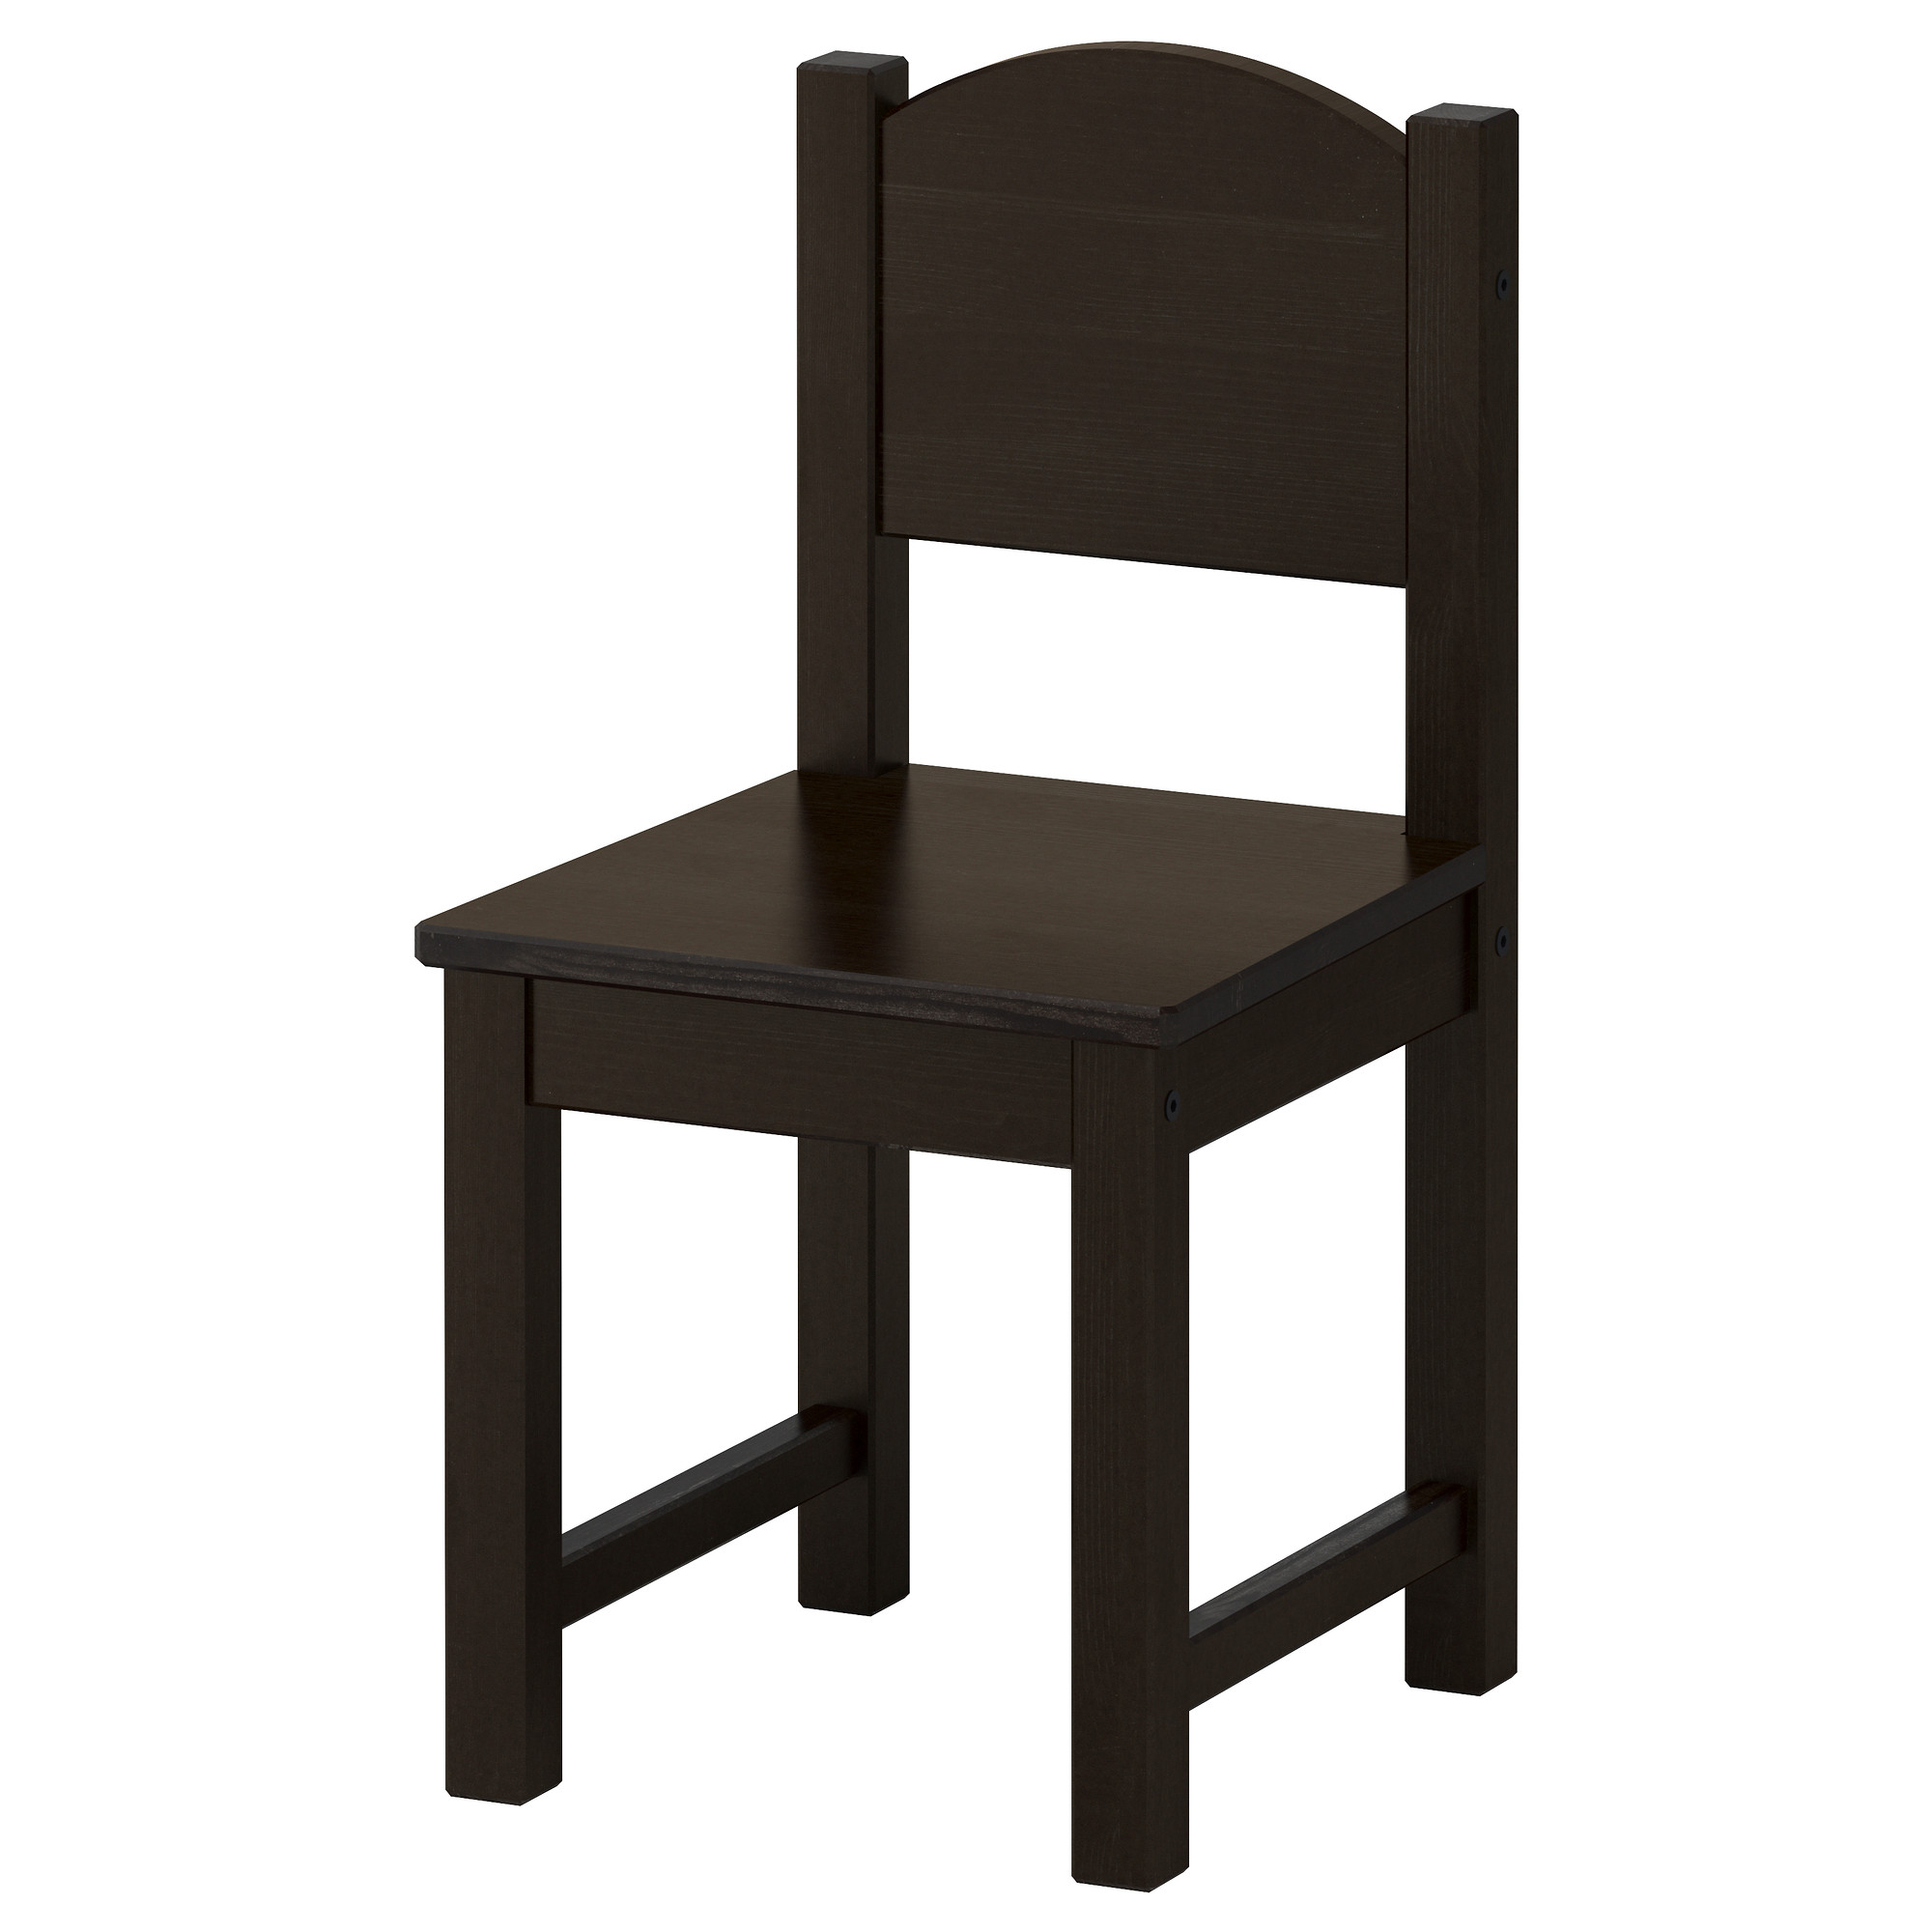 Chair Cartoon Cliparts | Free download on ClipArtMag